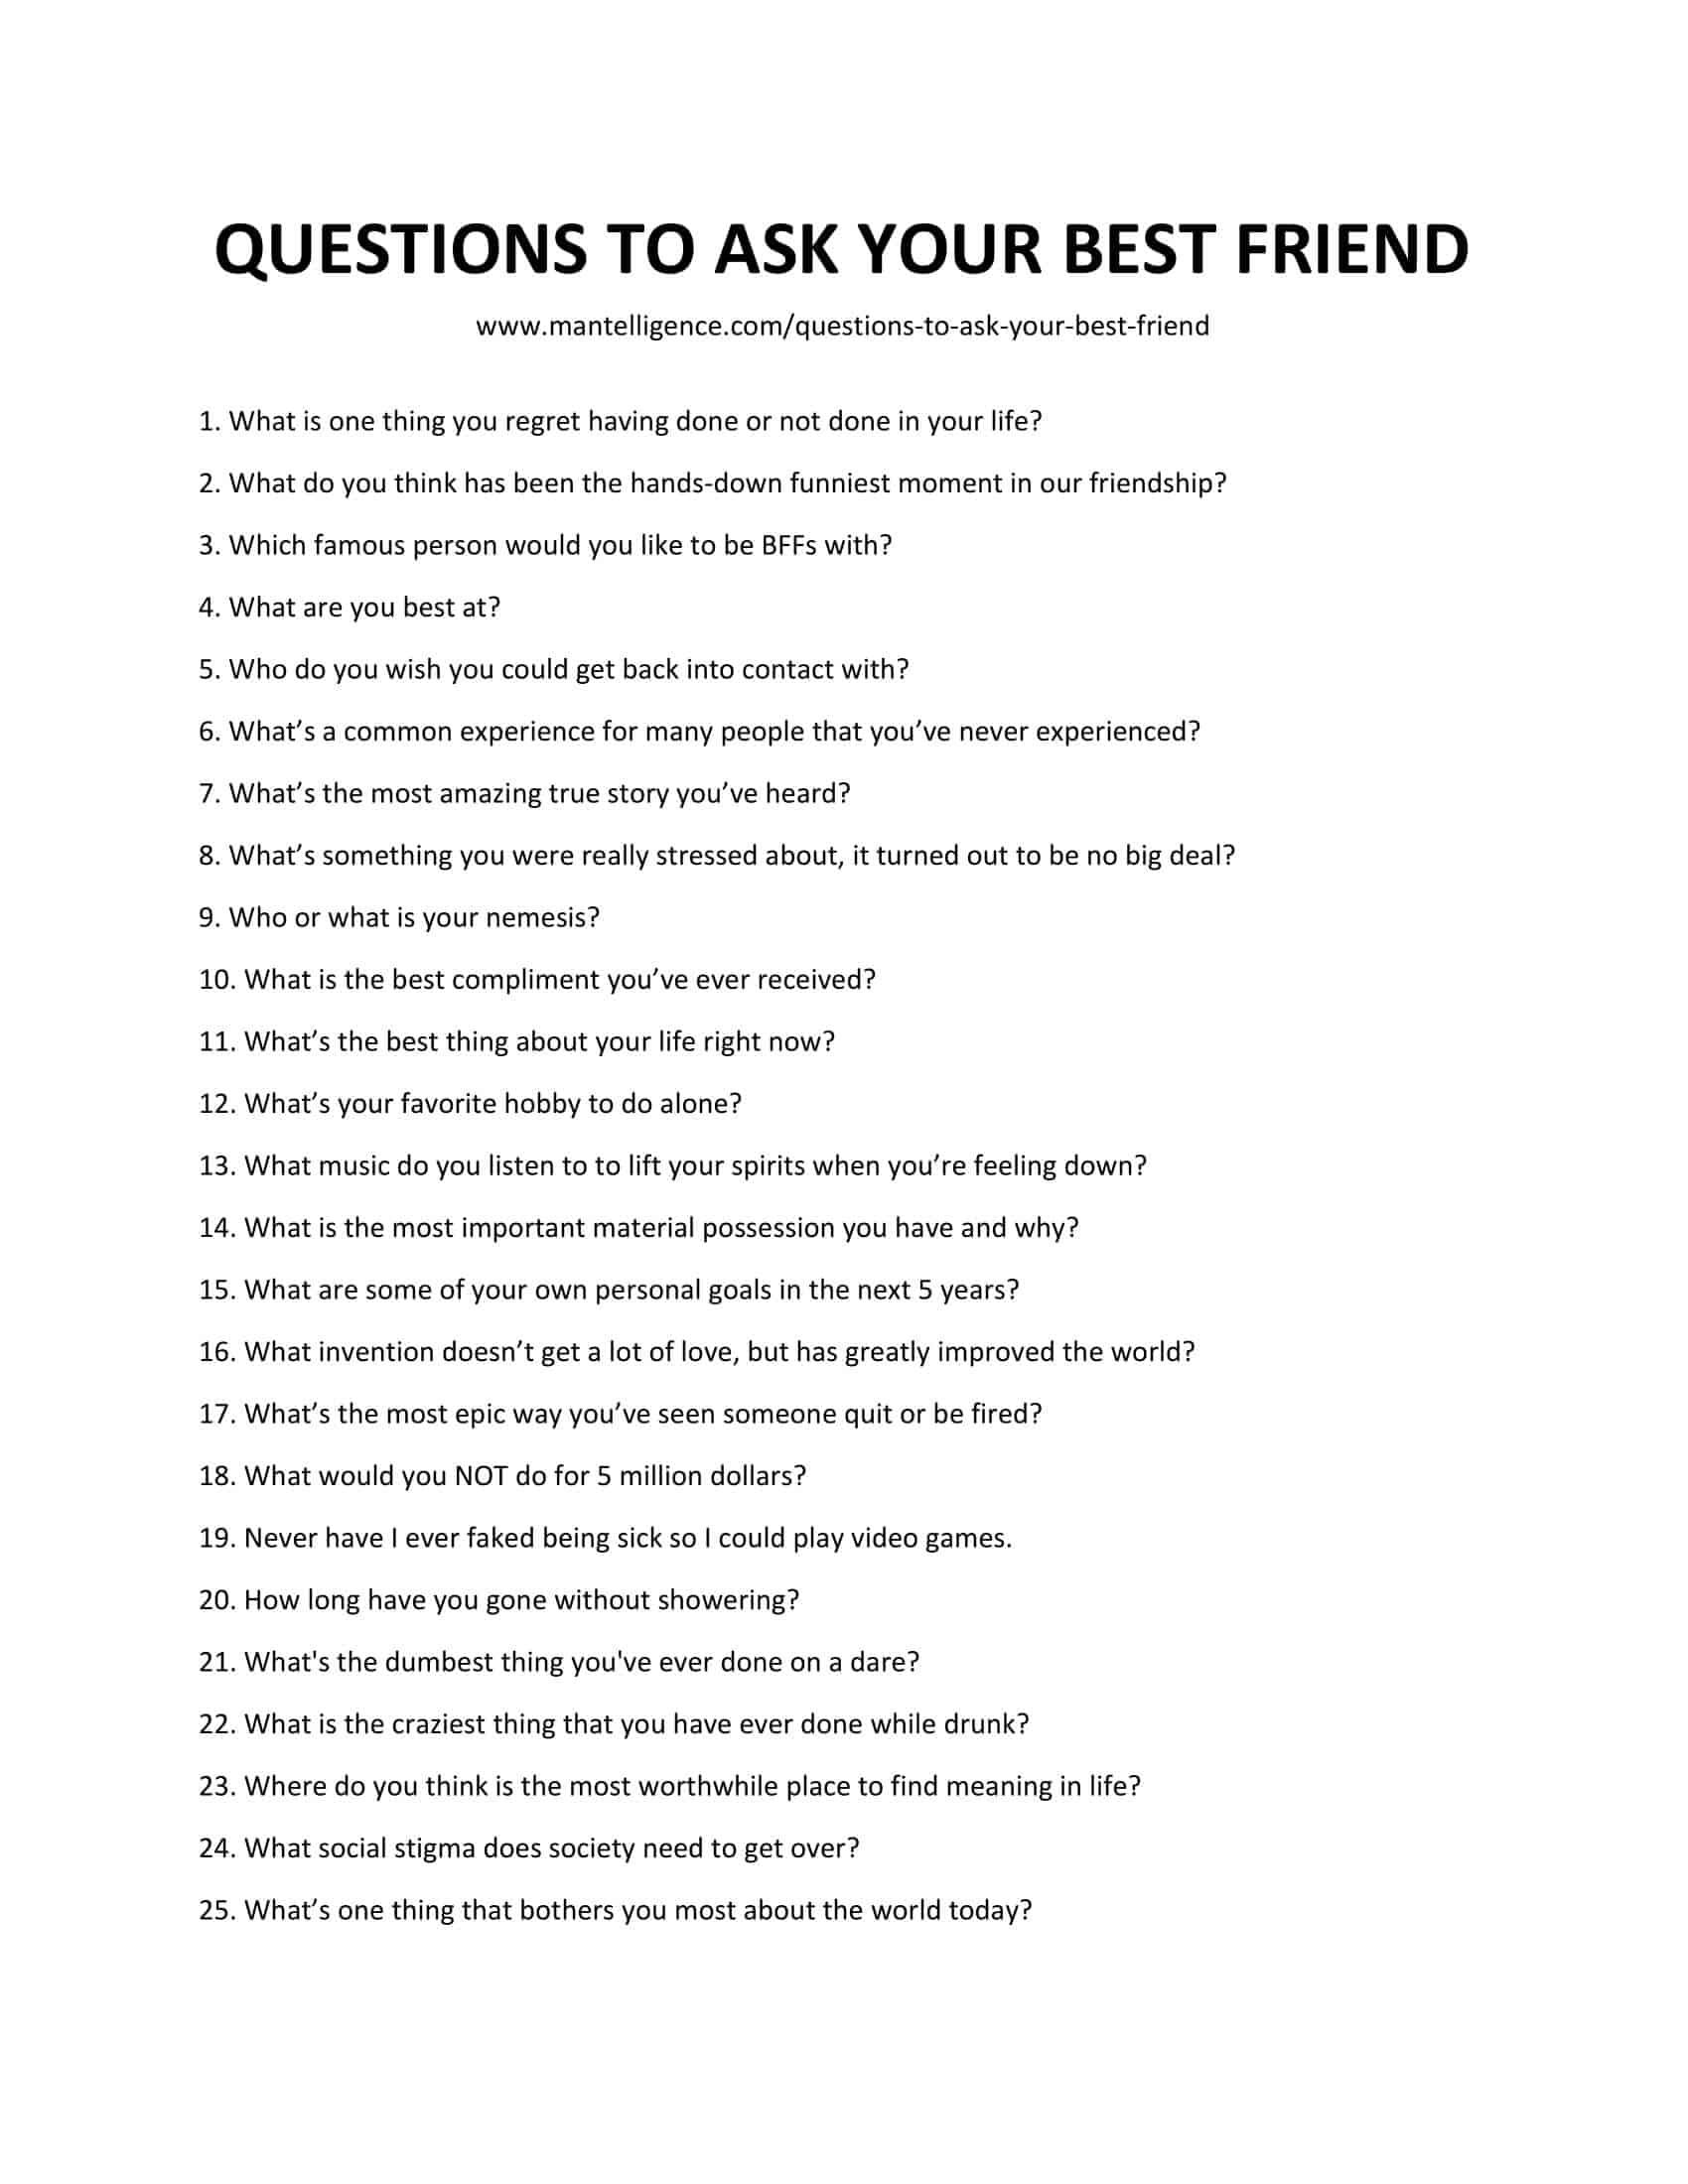 70 Questions To Ask Your Best Friend Quickly Spark Great Conversations